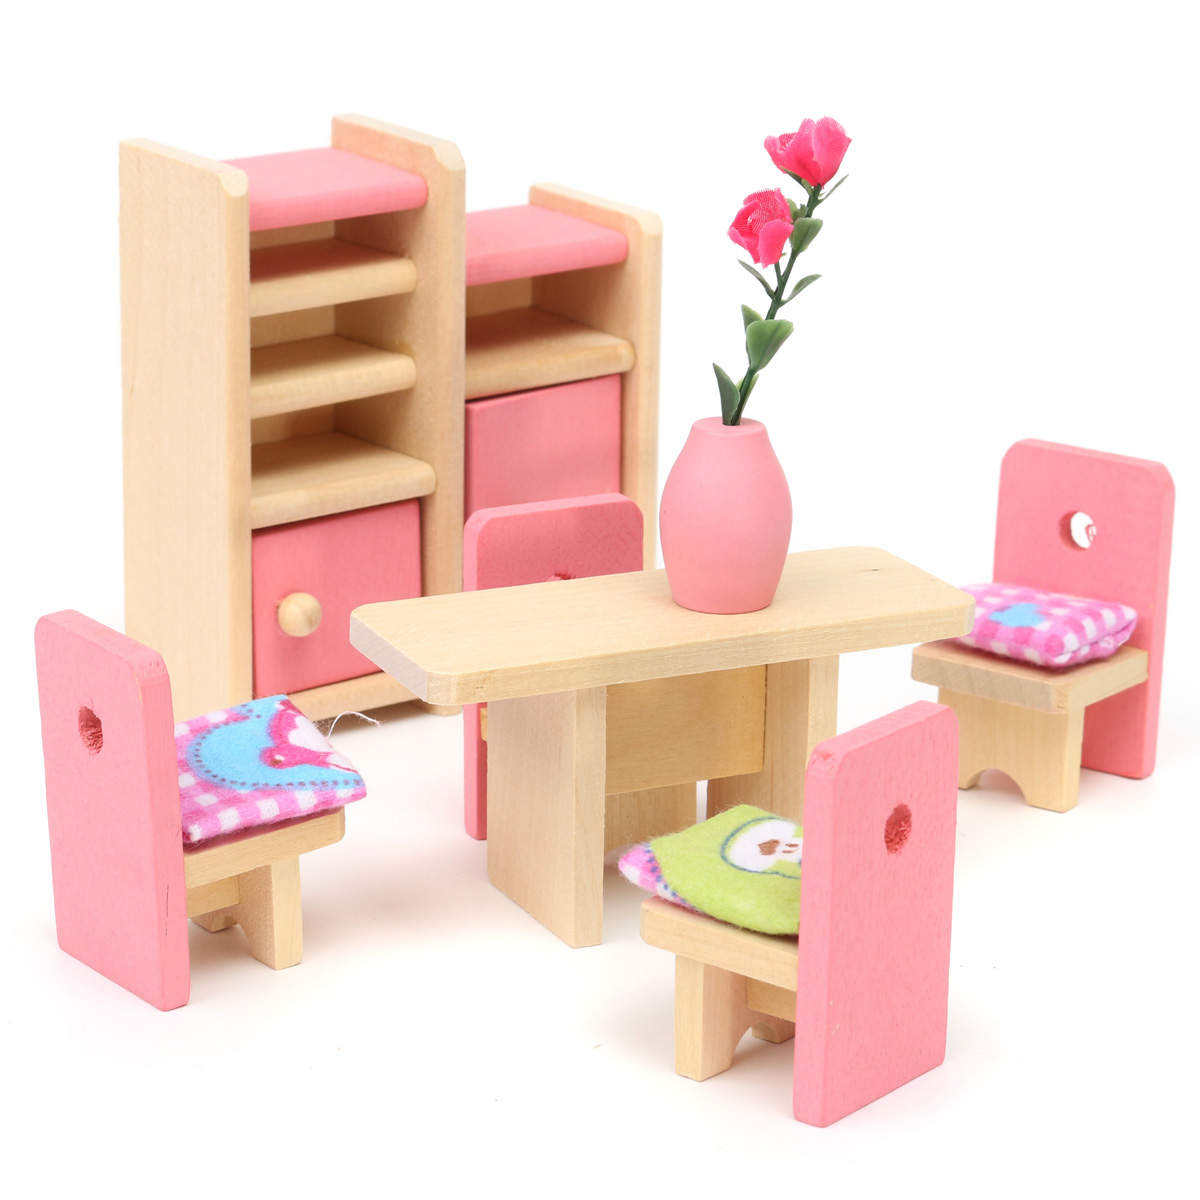 Wooden doll set children toys miniature house family furniture kit accessories at banggood Wooden childrens furniture